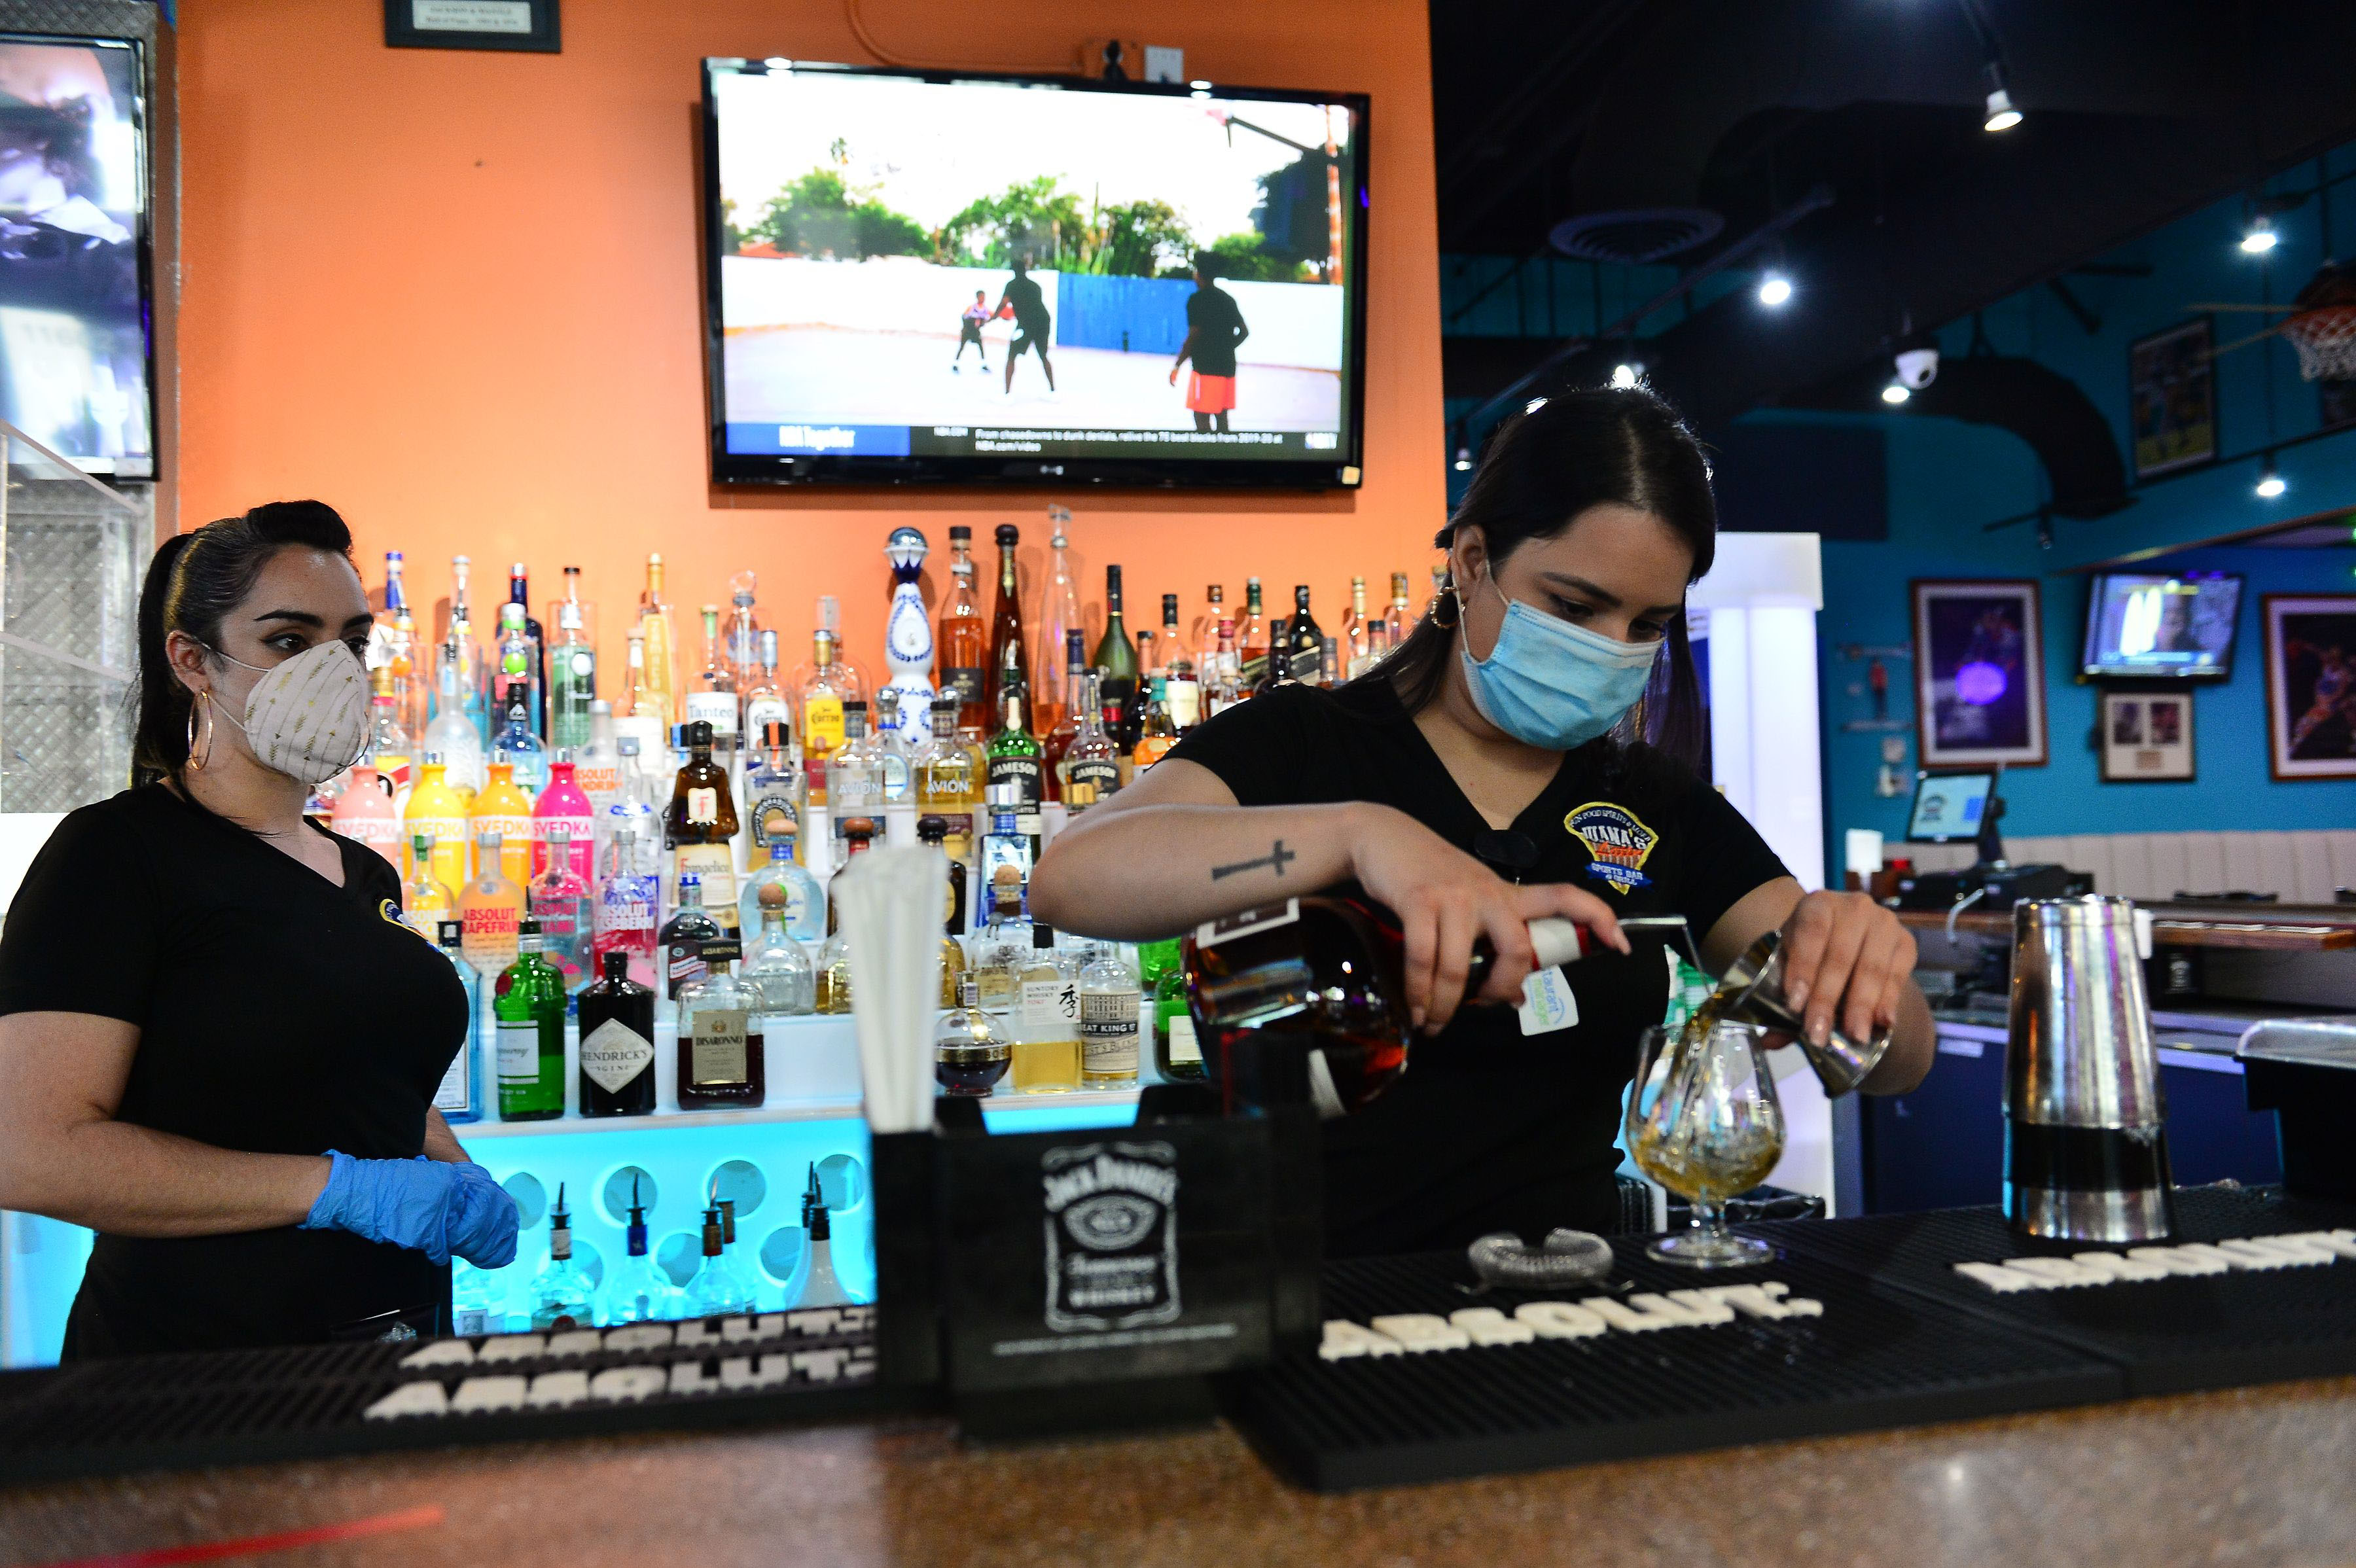 Bartenders prepare a drink for a customer at Juana's Latin Sports Bar & Grill in Miramar, Florida, on May 18.